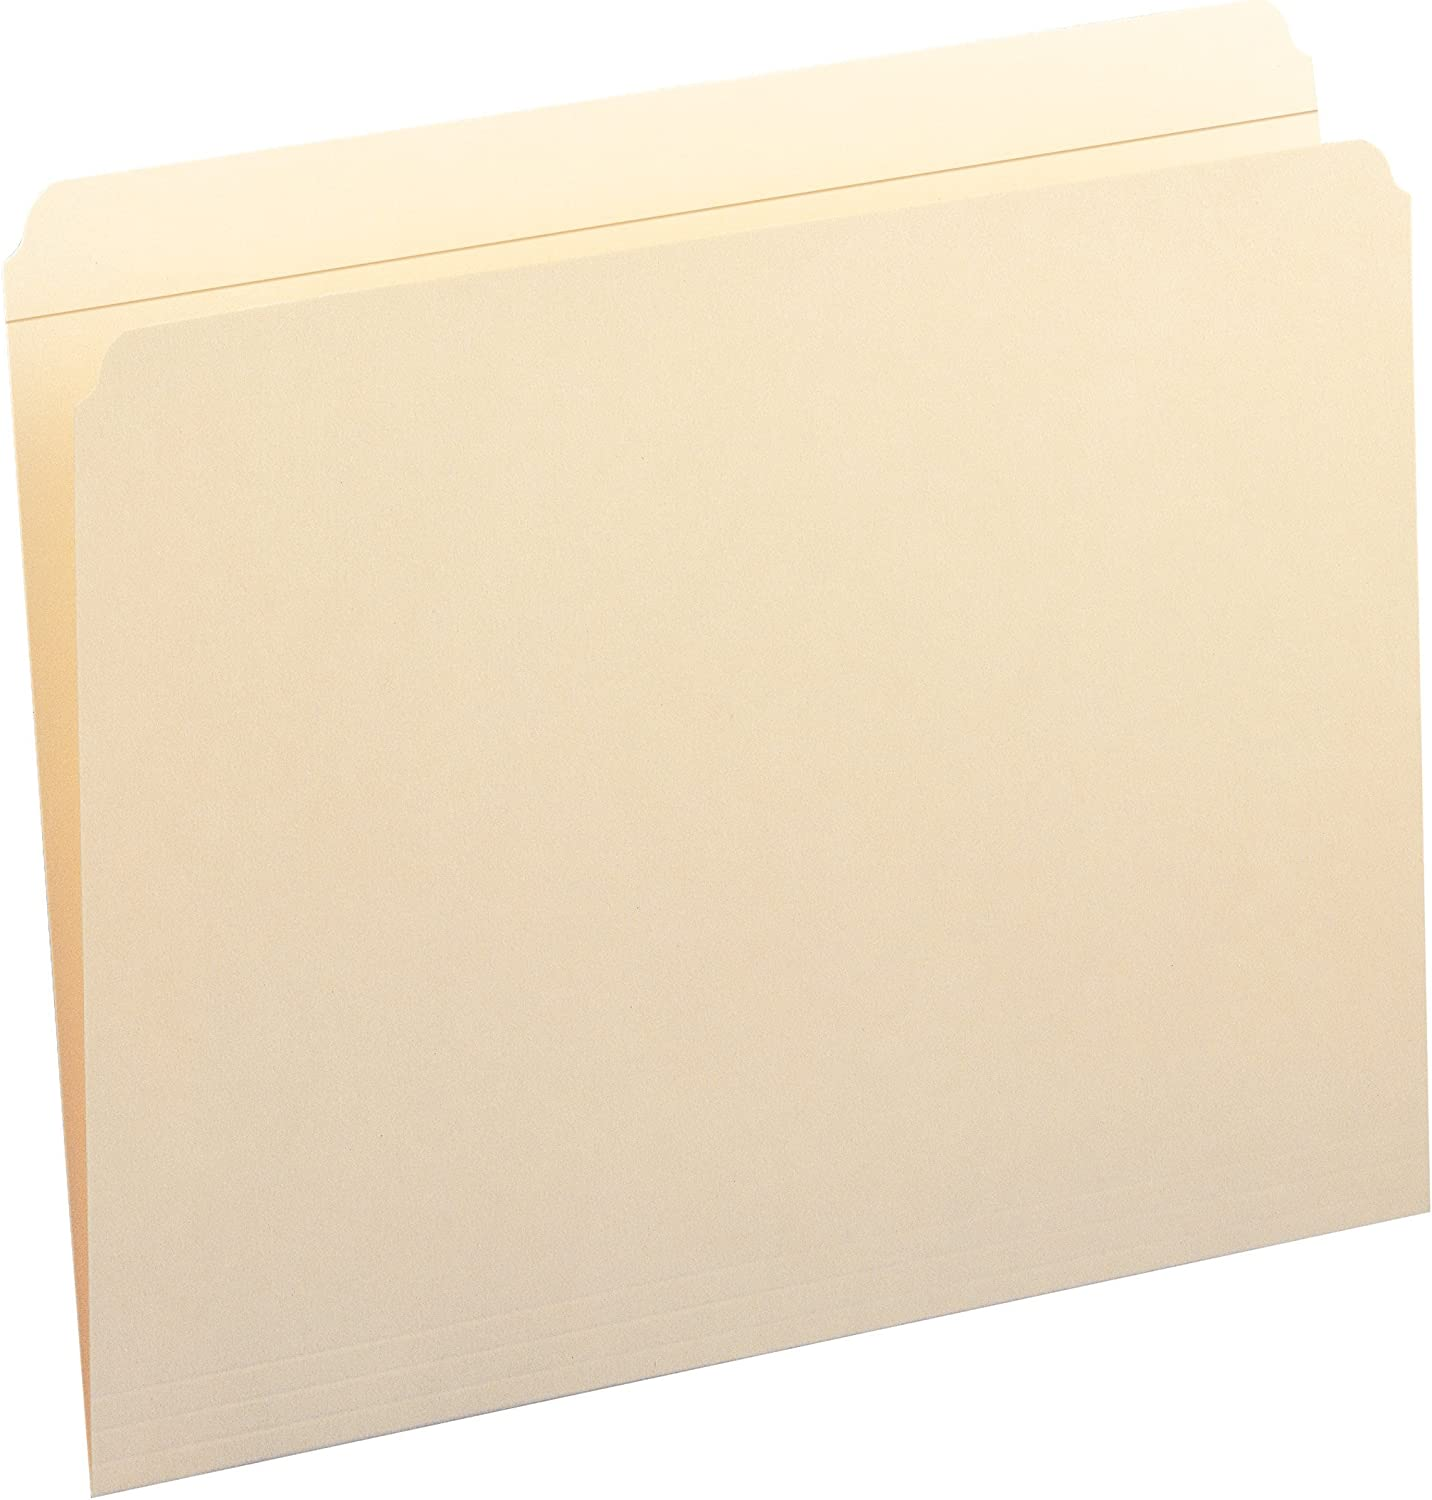 Smead File Folder, Reinforced Straight-Cut Tab, Letter Size, Manila, 100 Per Box (10310)